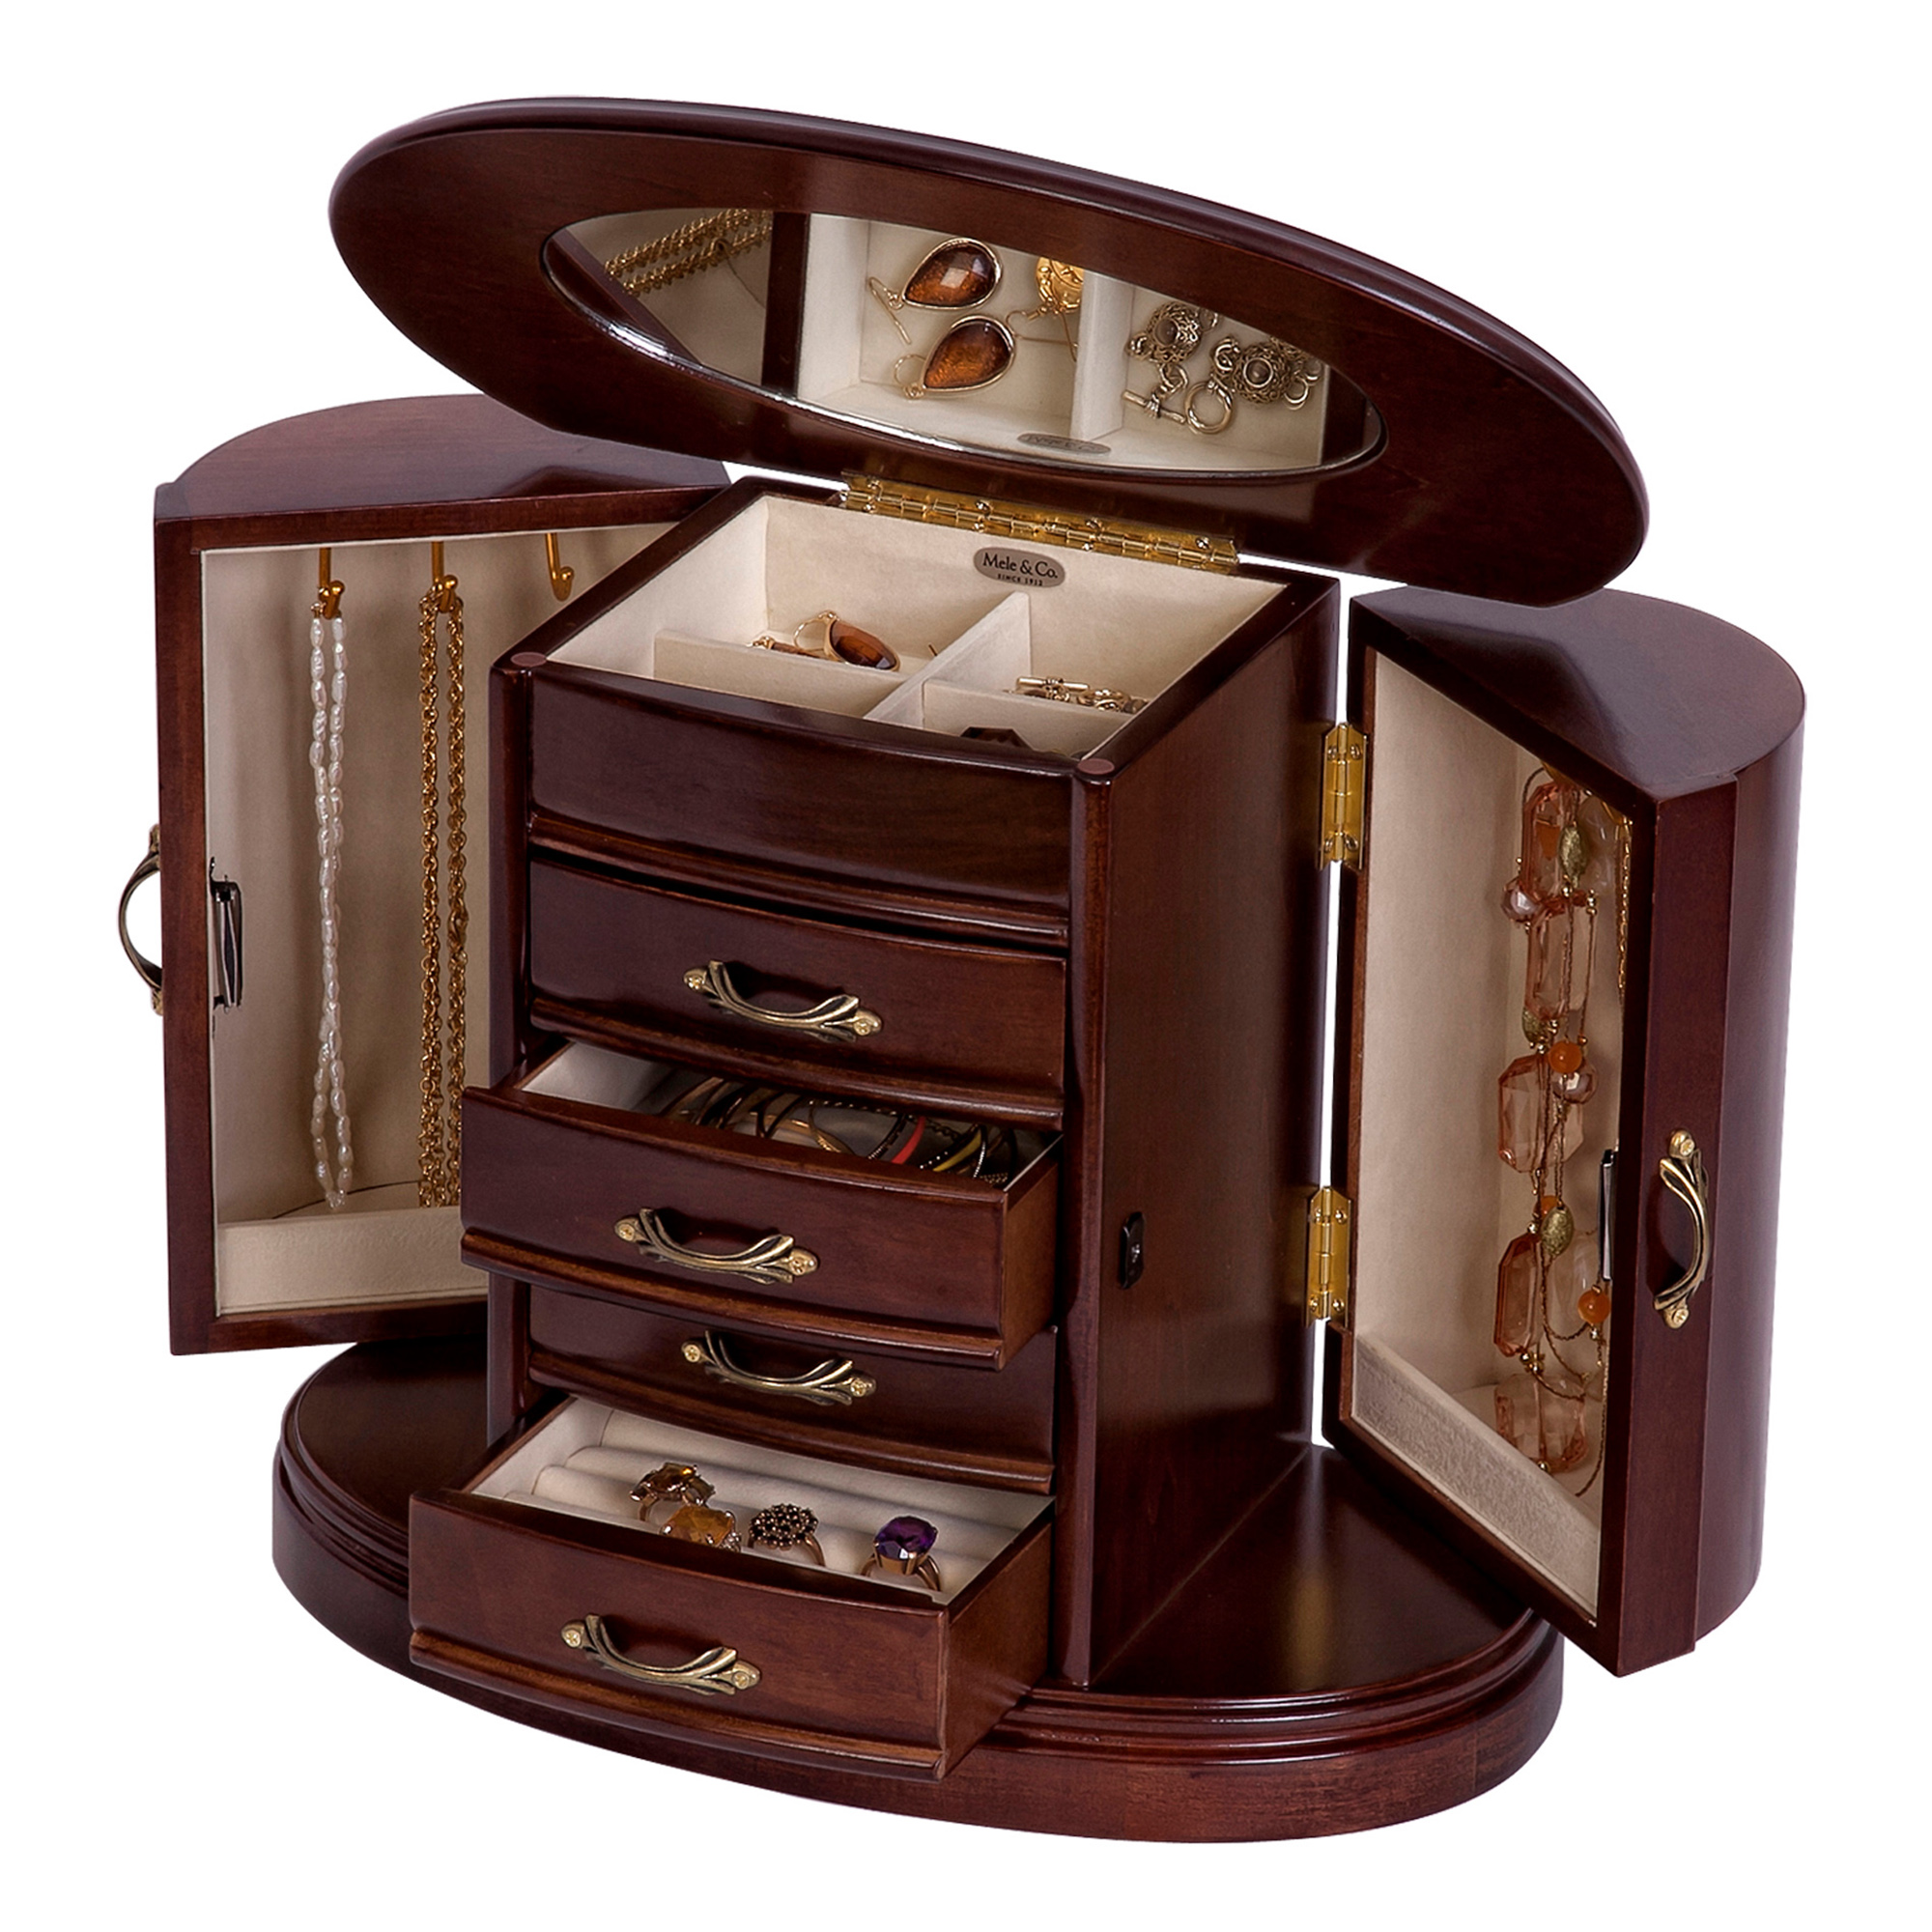 mele heloise wooden jewelry box in walnut finish. Black Bedroom Furniture Sets. Home Design Ideas